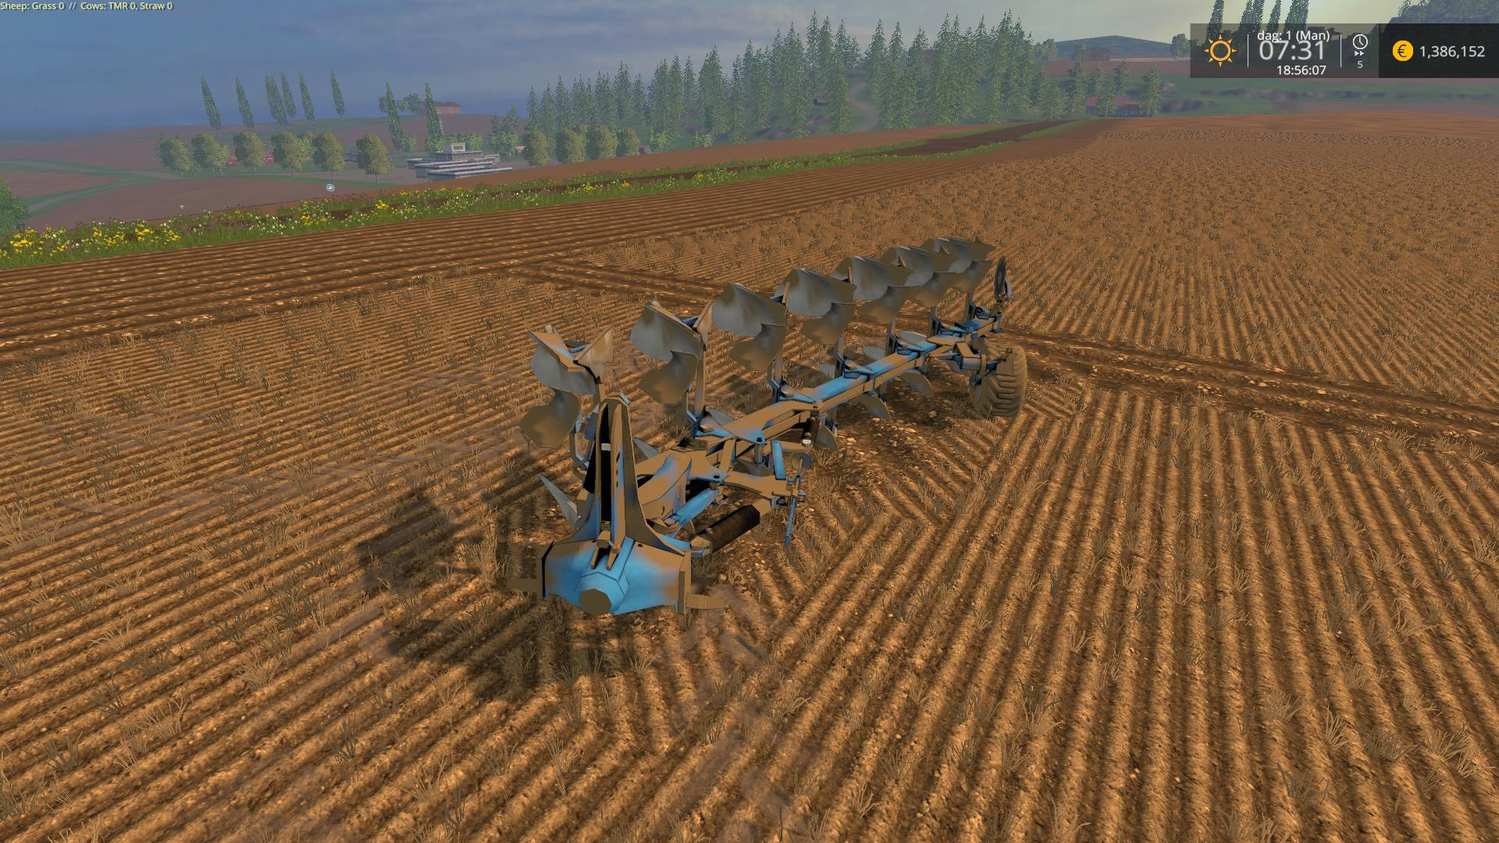 С/Х инвентарь для Мод плуг Lemken Juwel 8 v1.02 для Farming Simulator 2015